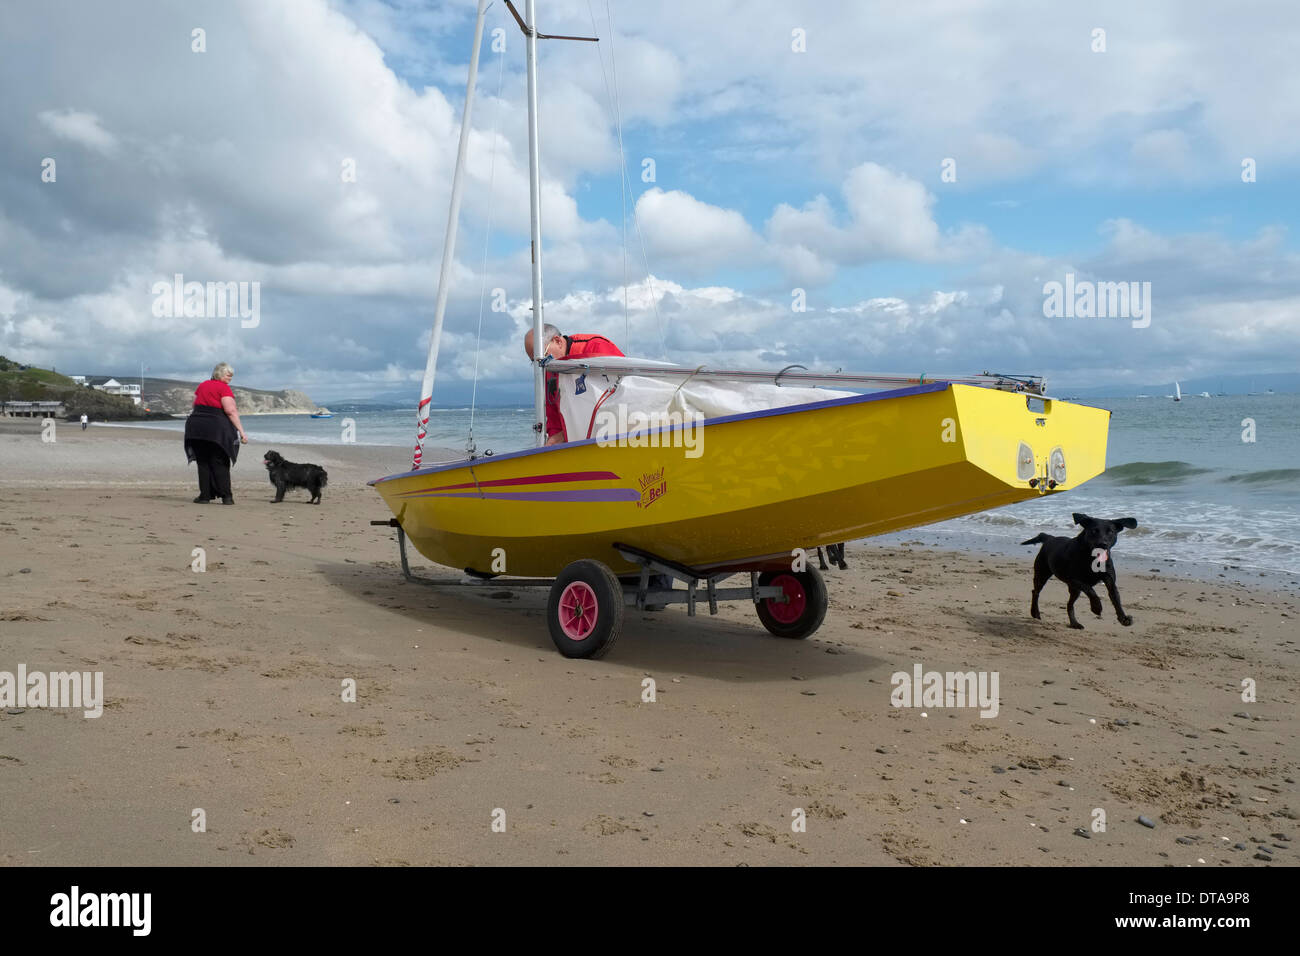 After the aftrenoon sail : Removing the mainsail from a modern yellow hulled dinghy on the beach at Abersoch, North Wales - Stock Image